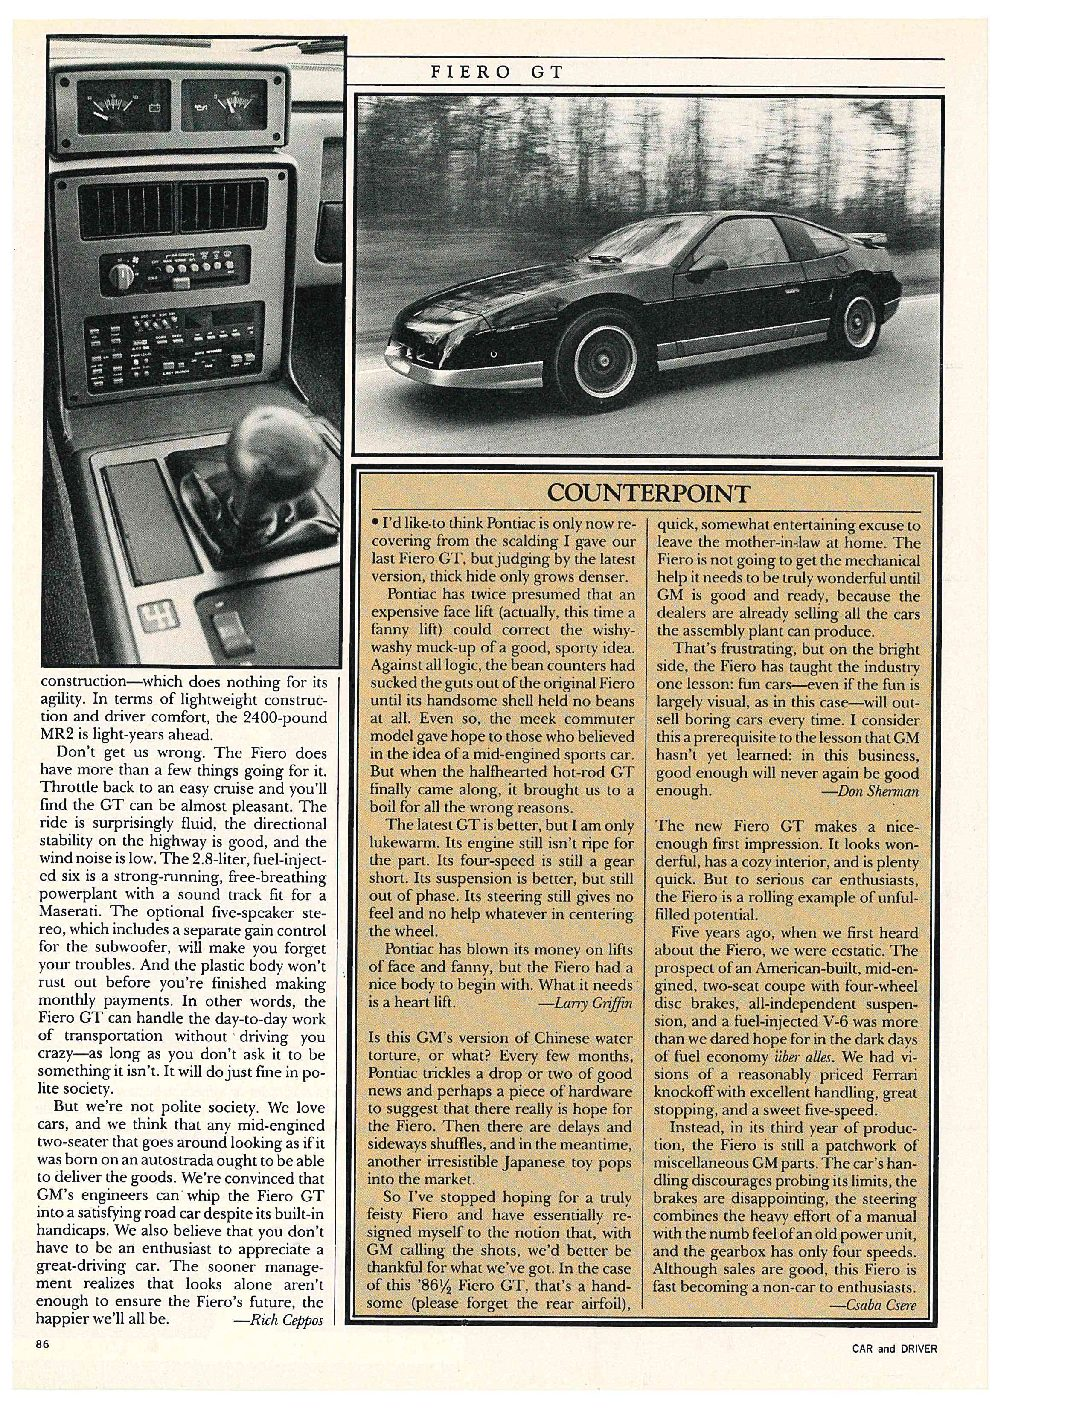 Pontiac Fiero GT review by Car and Driver magazine page 4